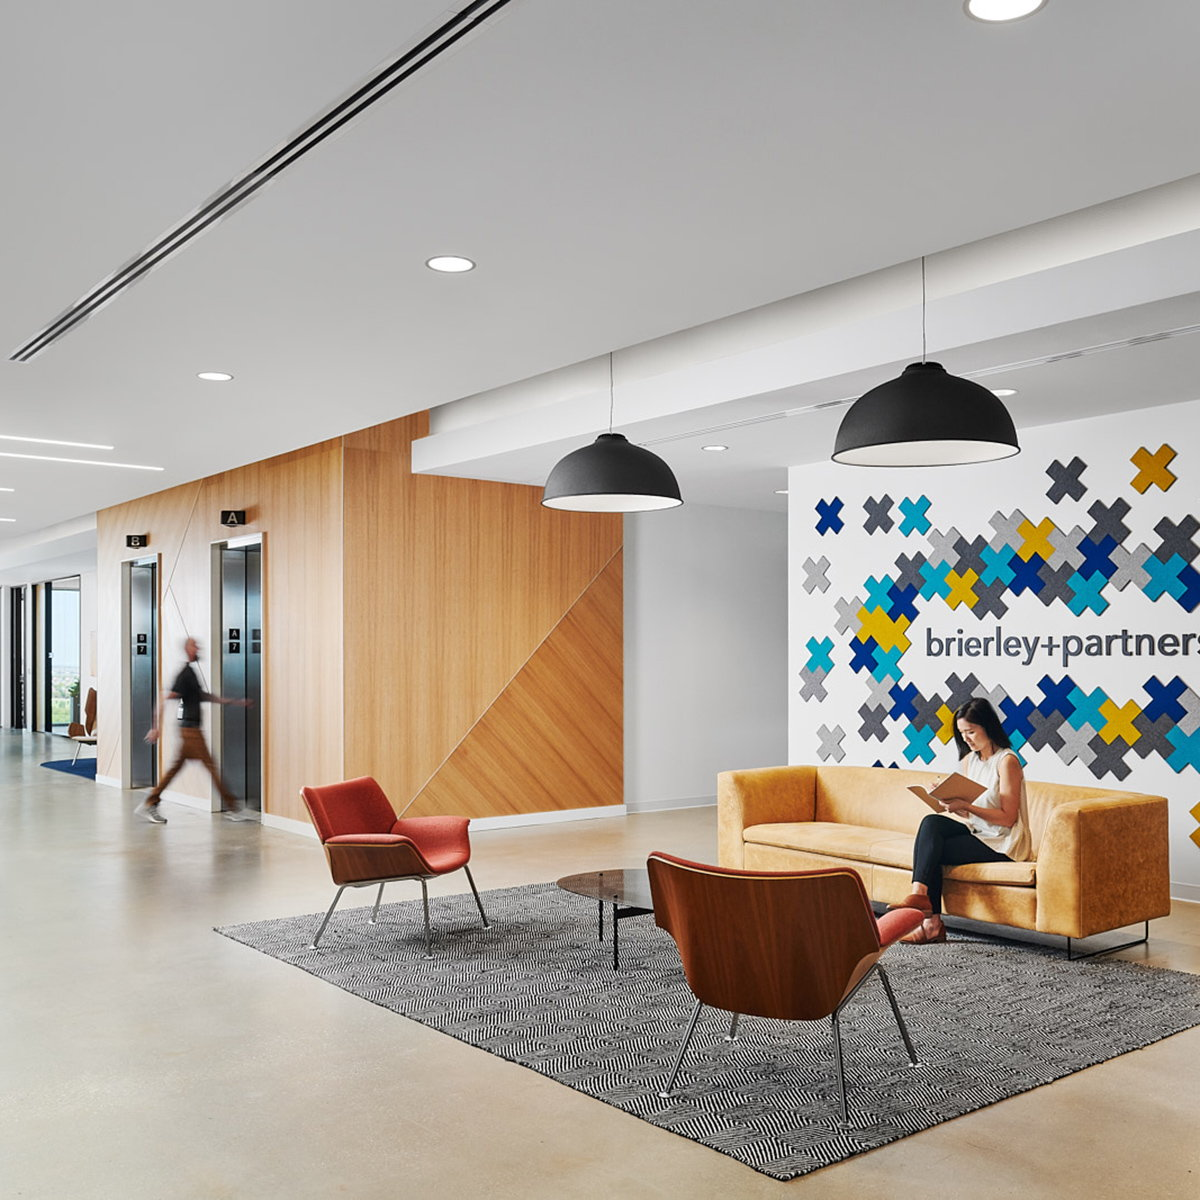 Perkins and Will Designs New Office for Brierley+Partners